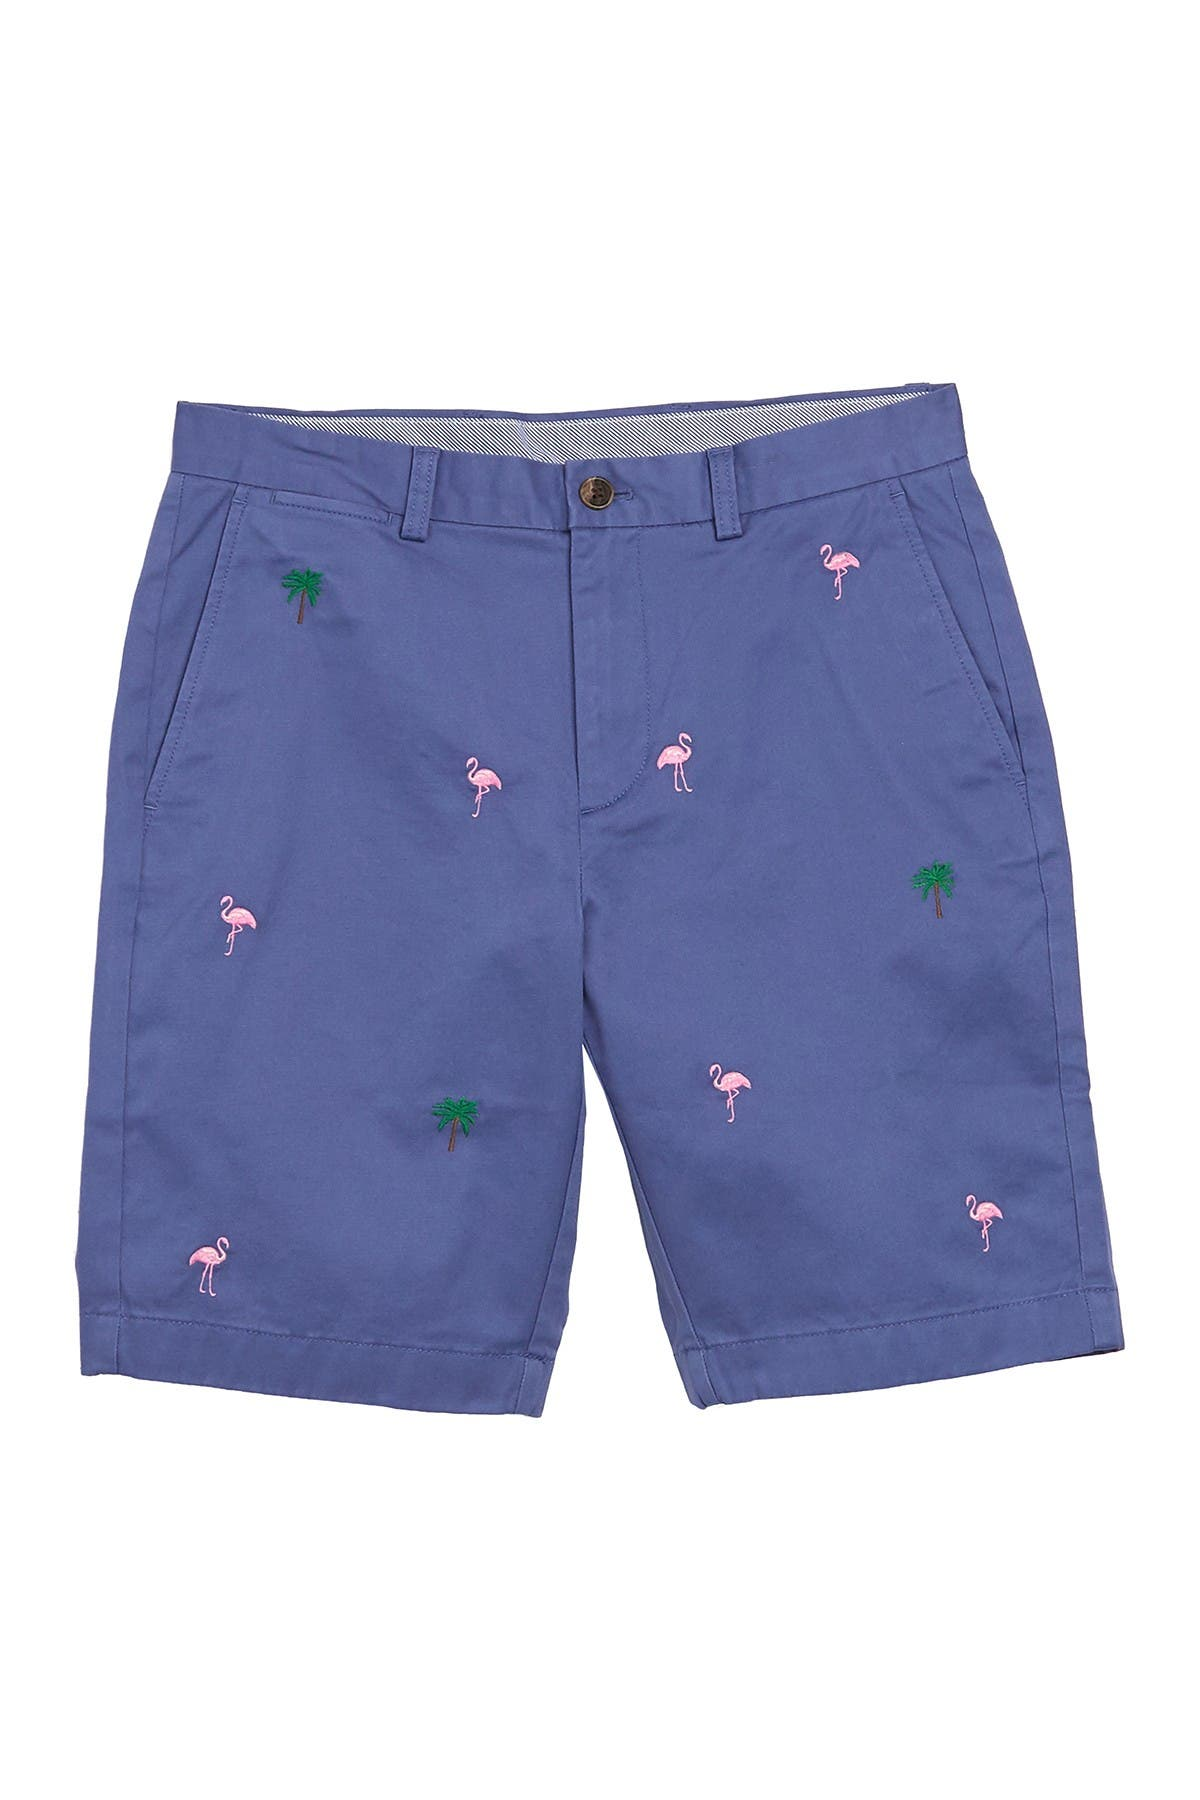 Brooks Brothers Tropical Flamgino Embroidery Stretch Chino Shorts